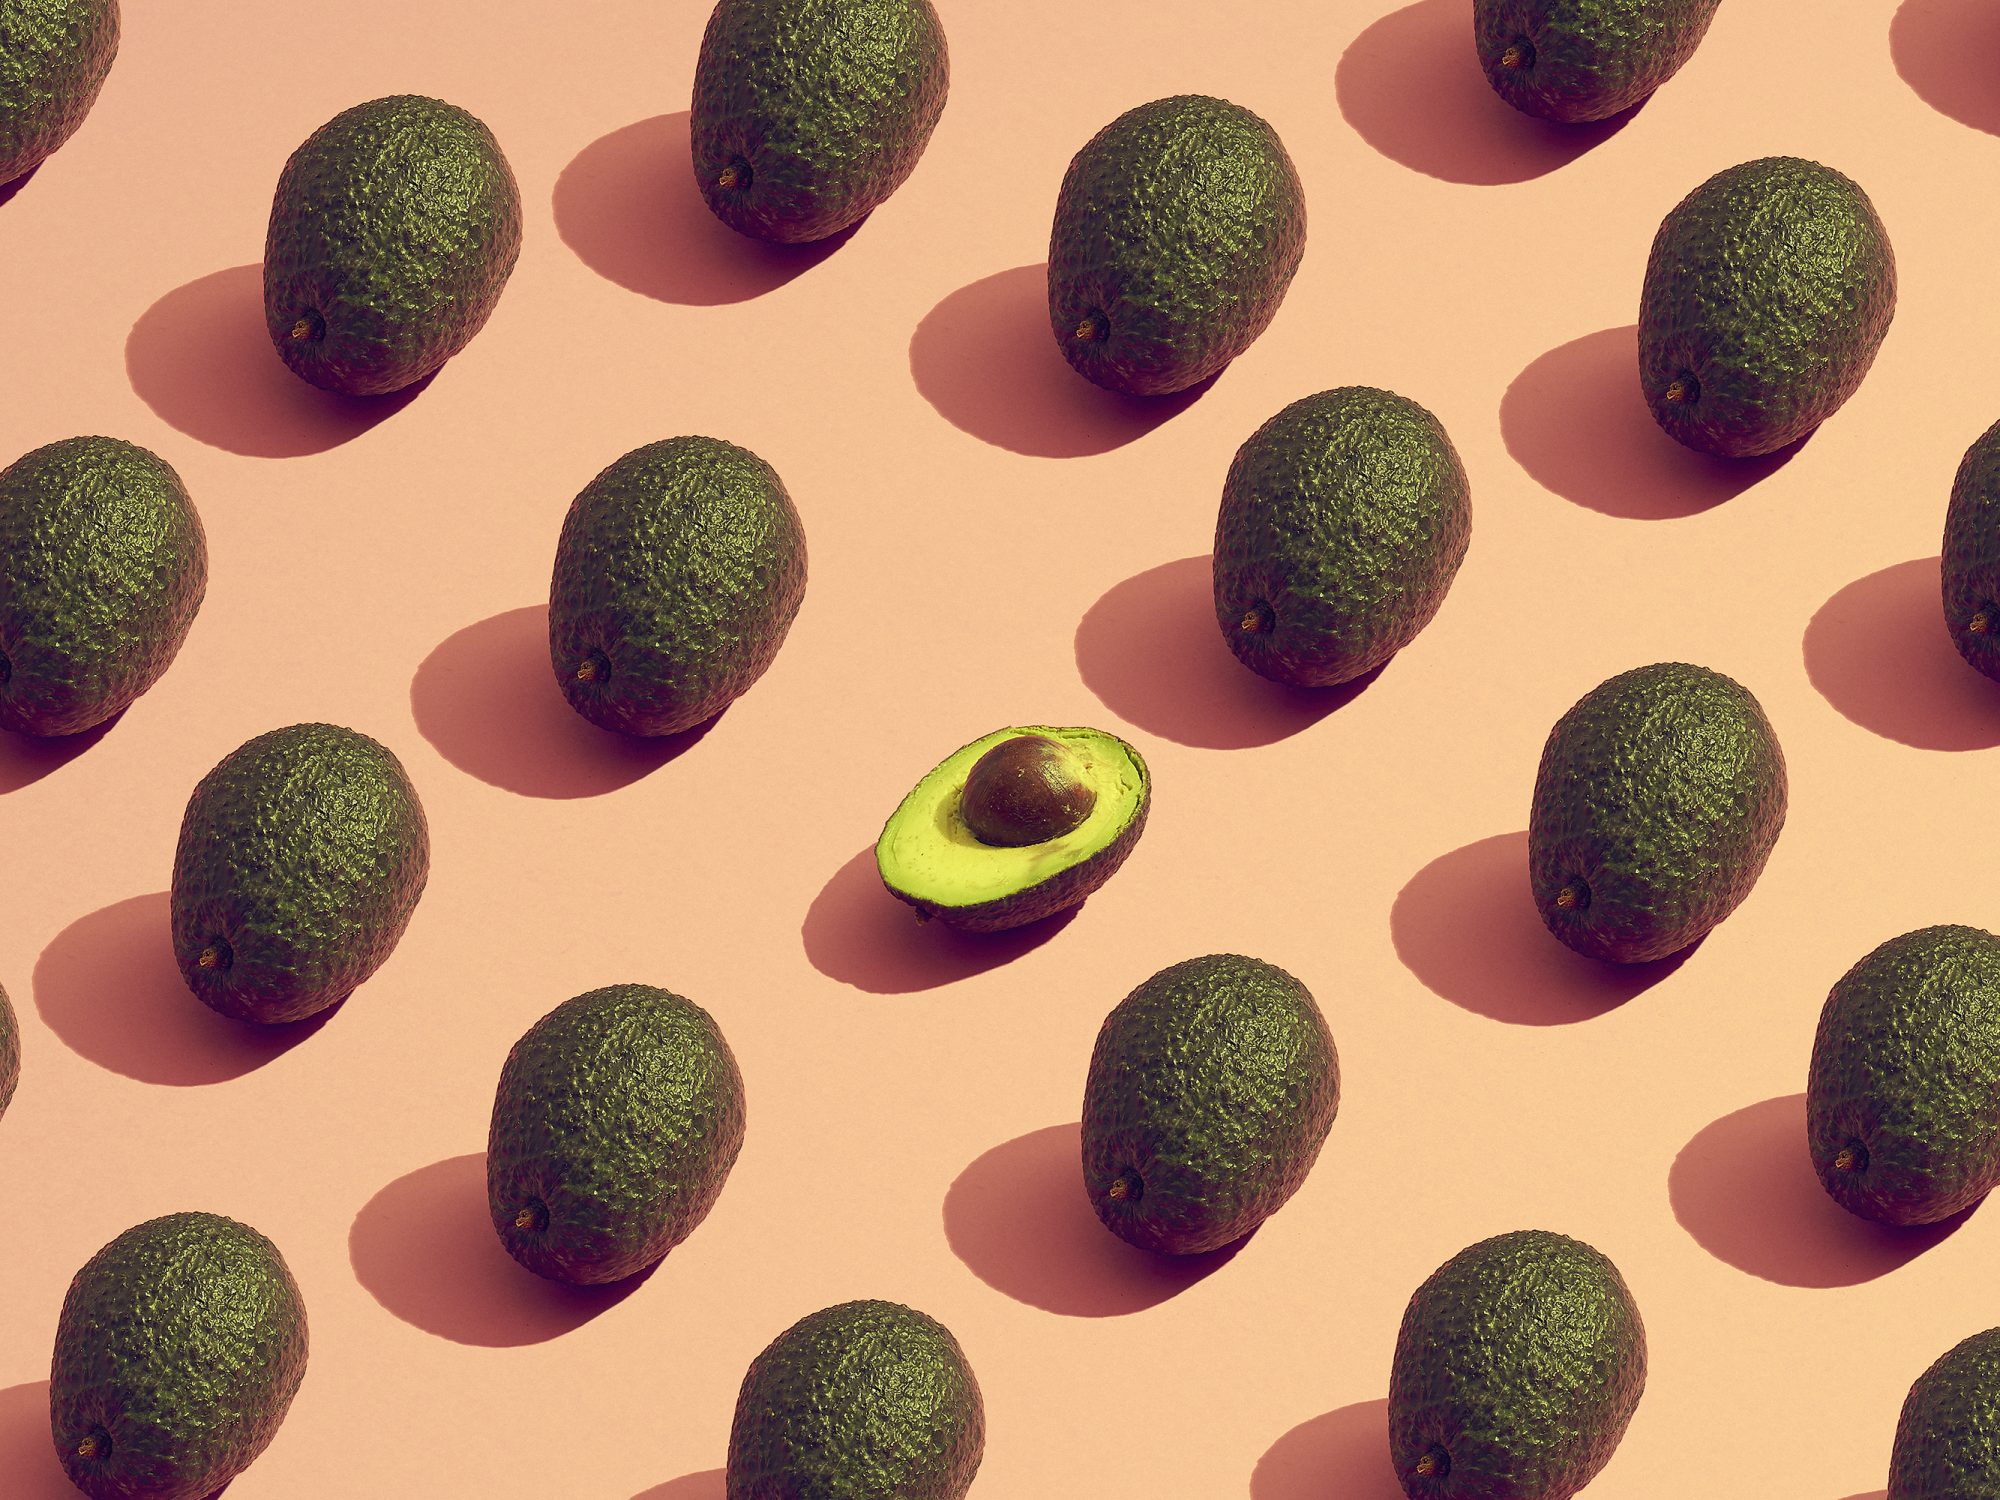 Healthy fats: large group of avocados placed in a pattern